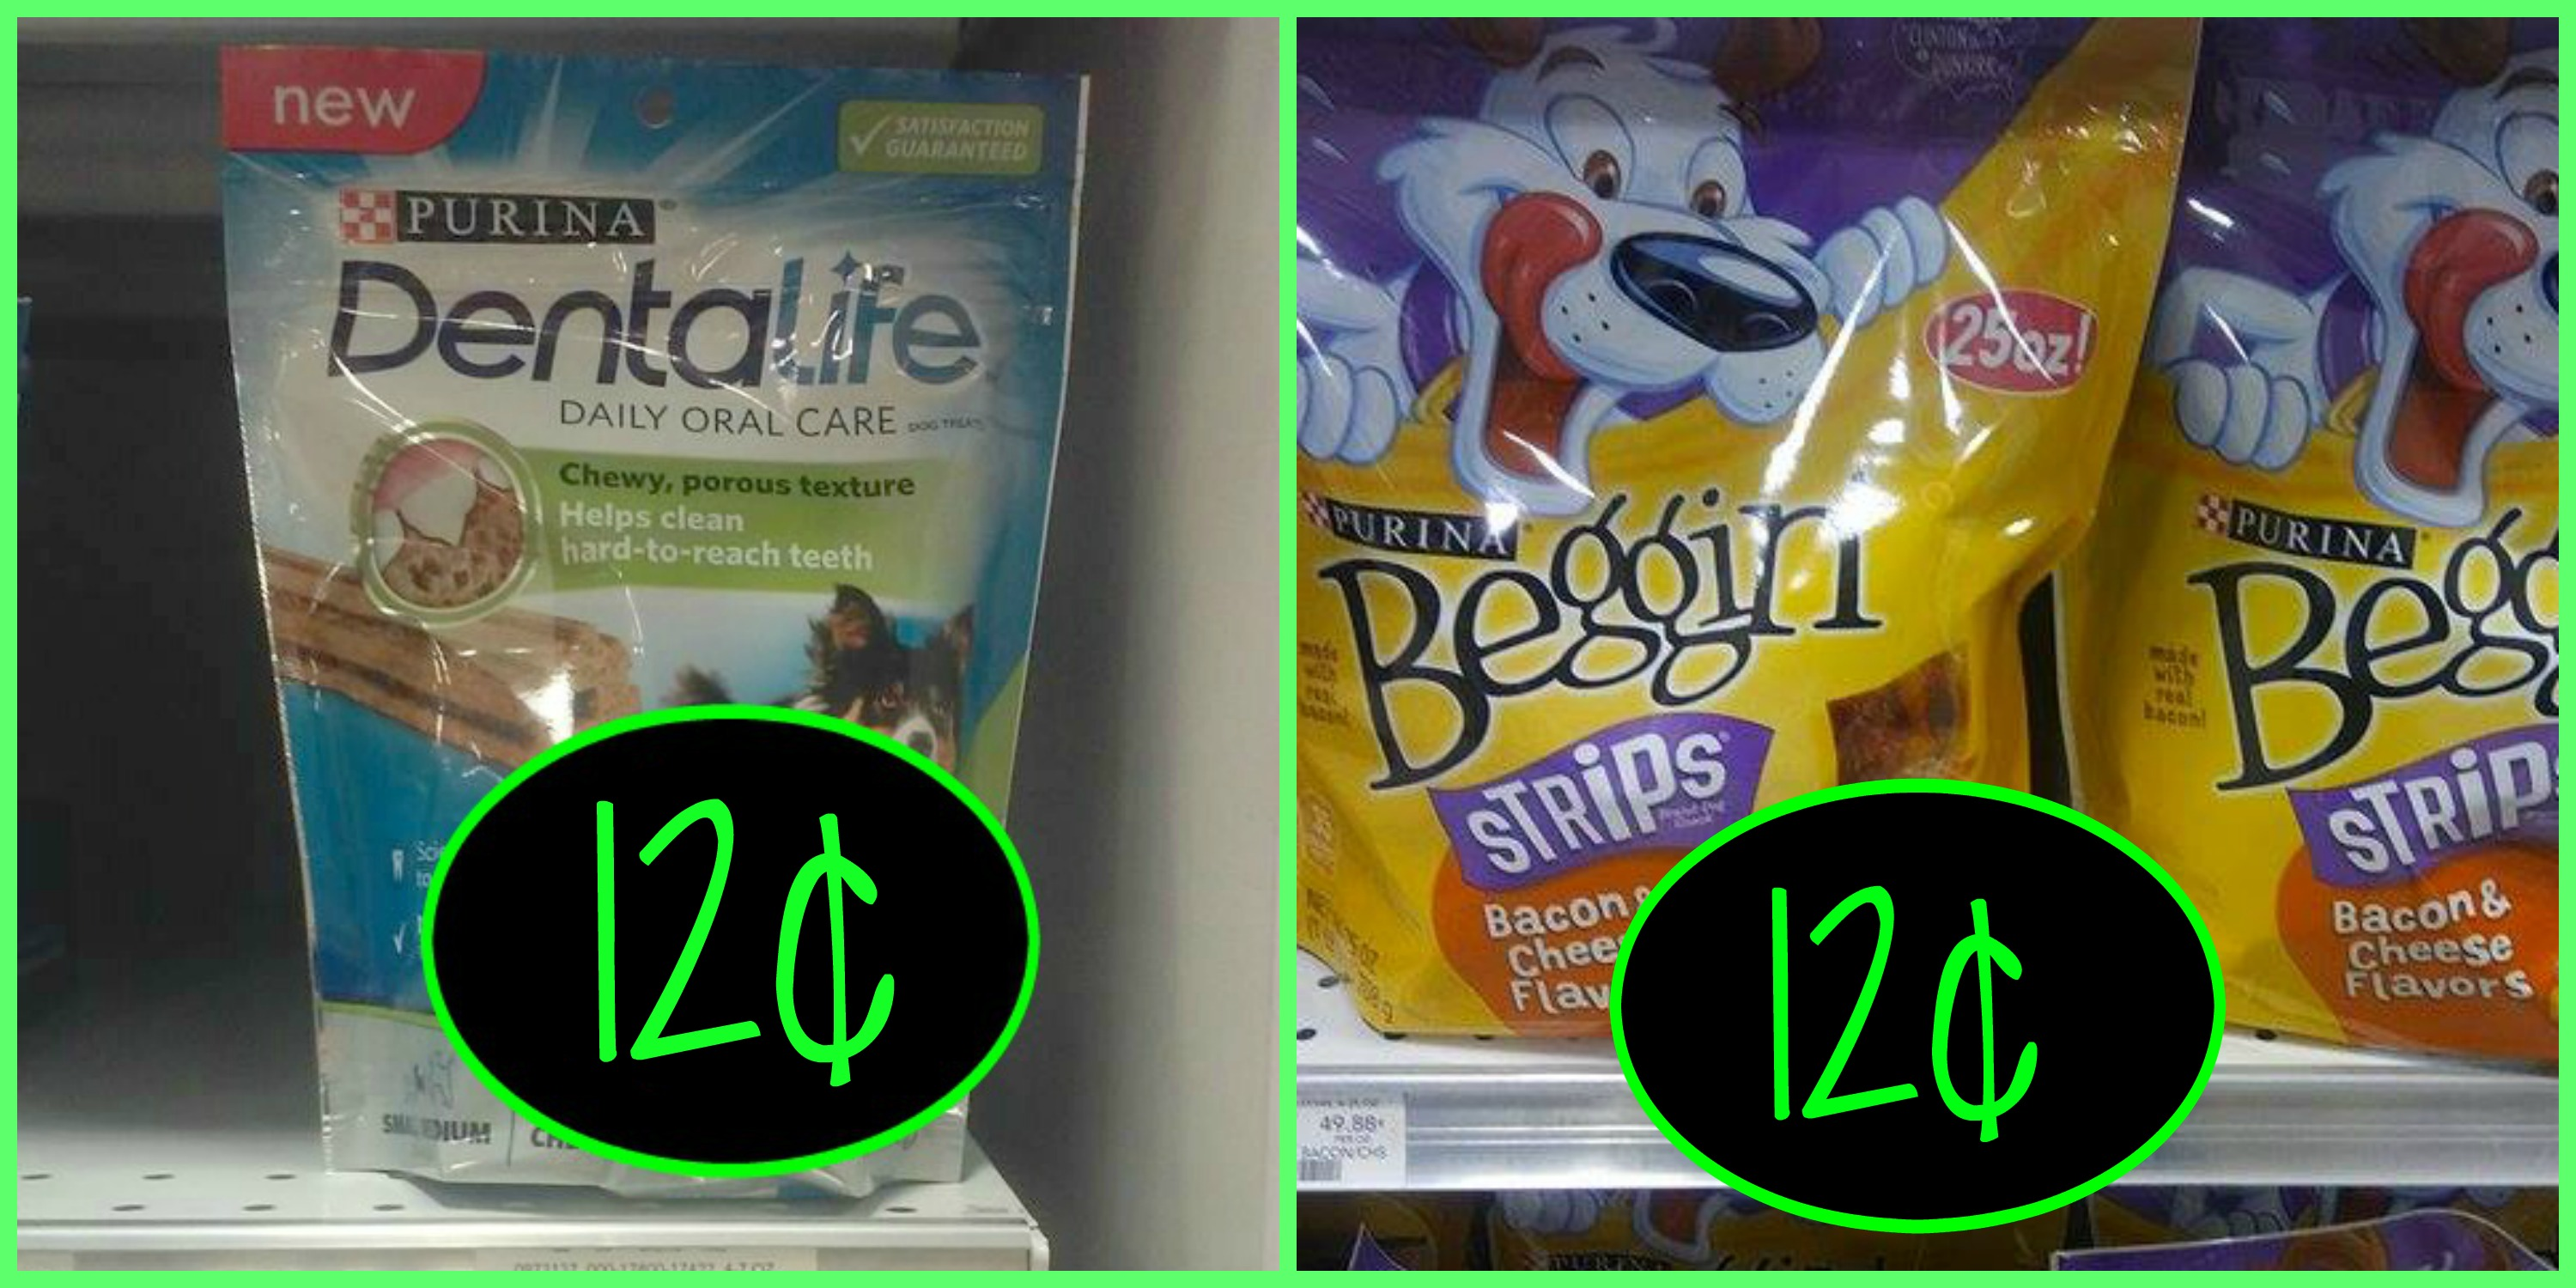 Hot Deals on Purina Cat and Dog as low as 12¢, if your Publix takes Target as a competitor!